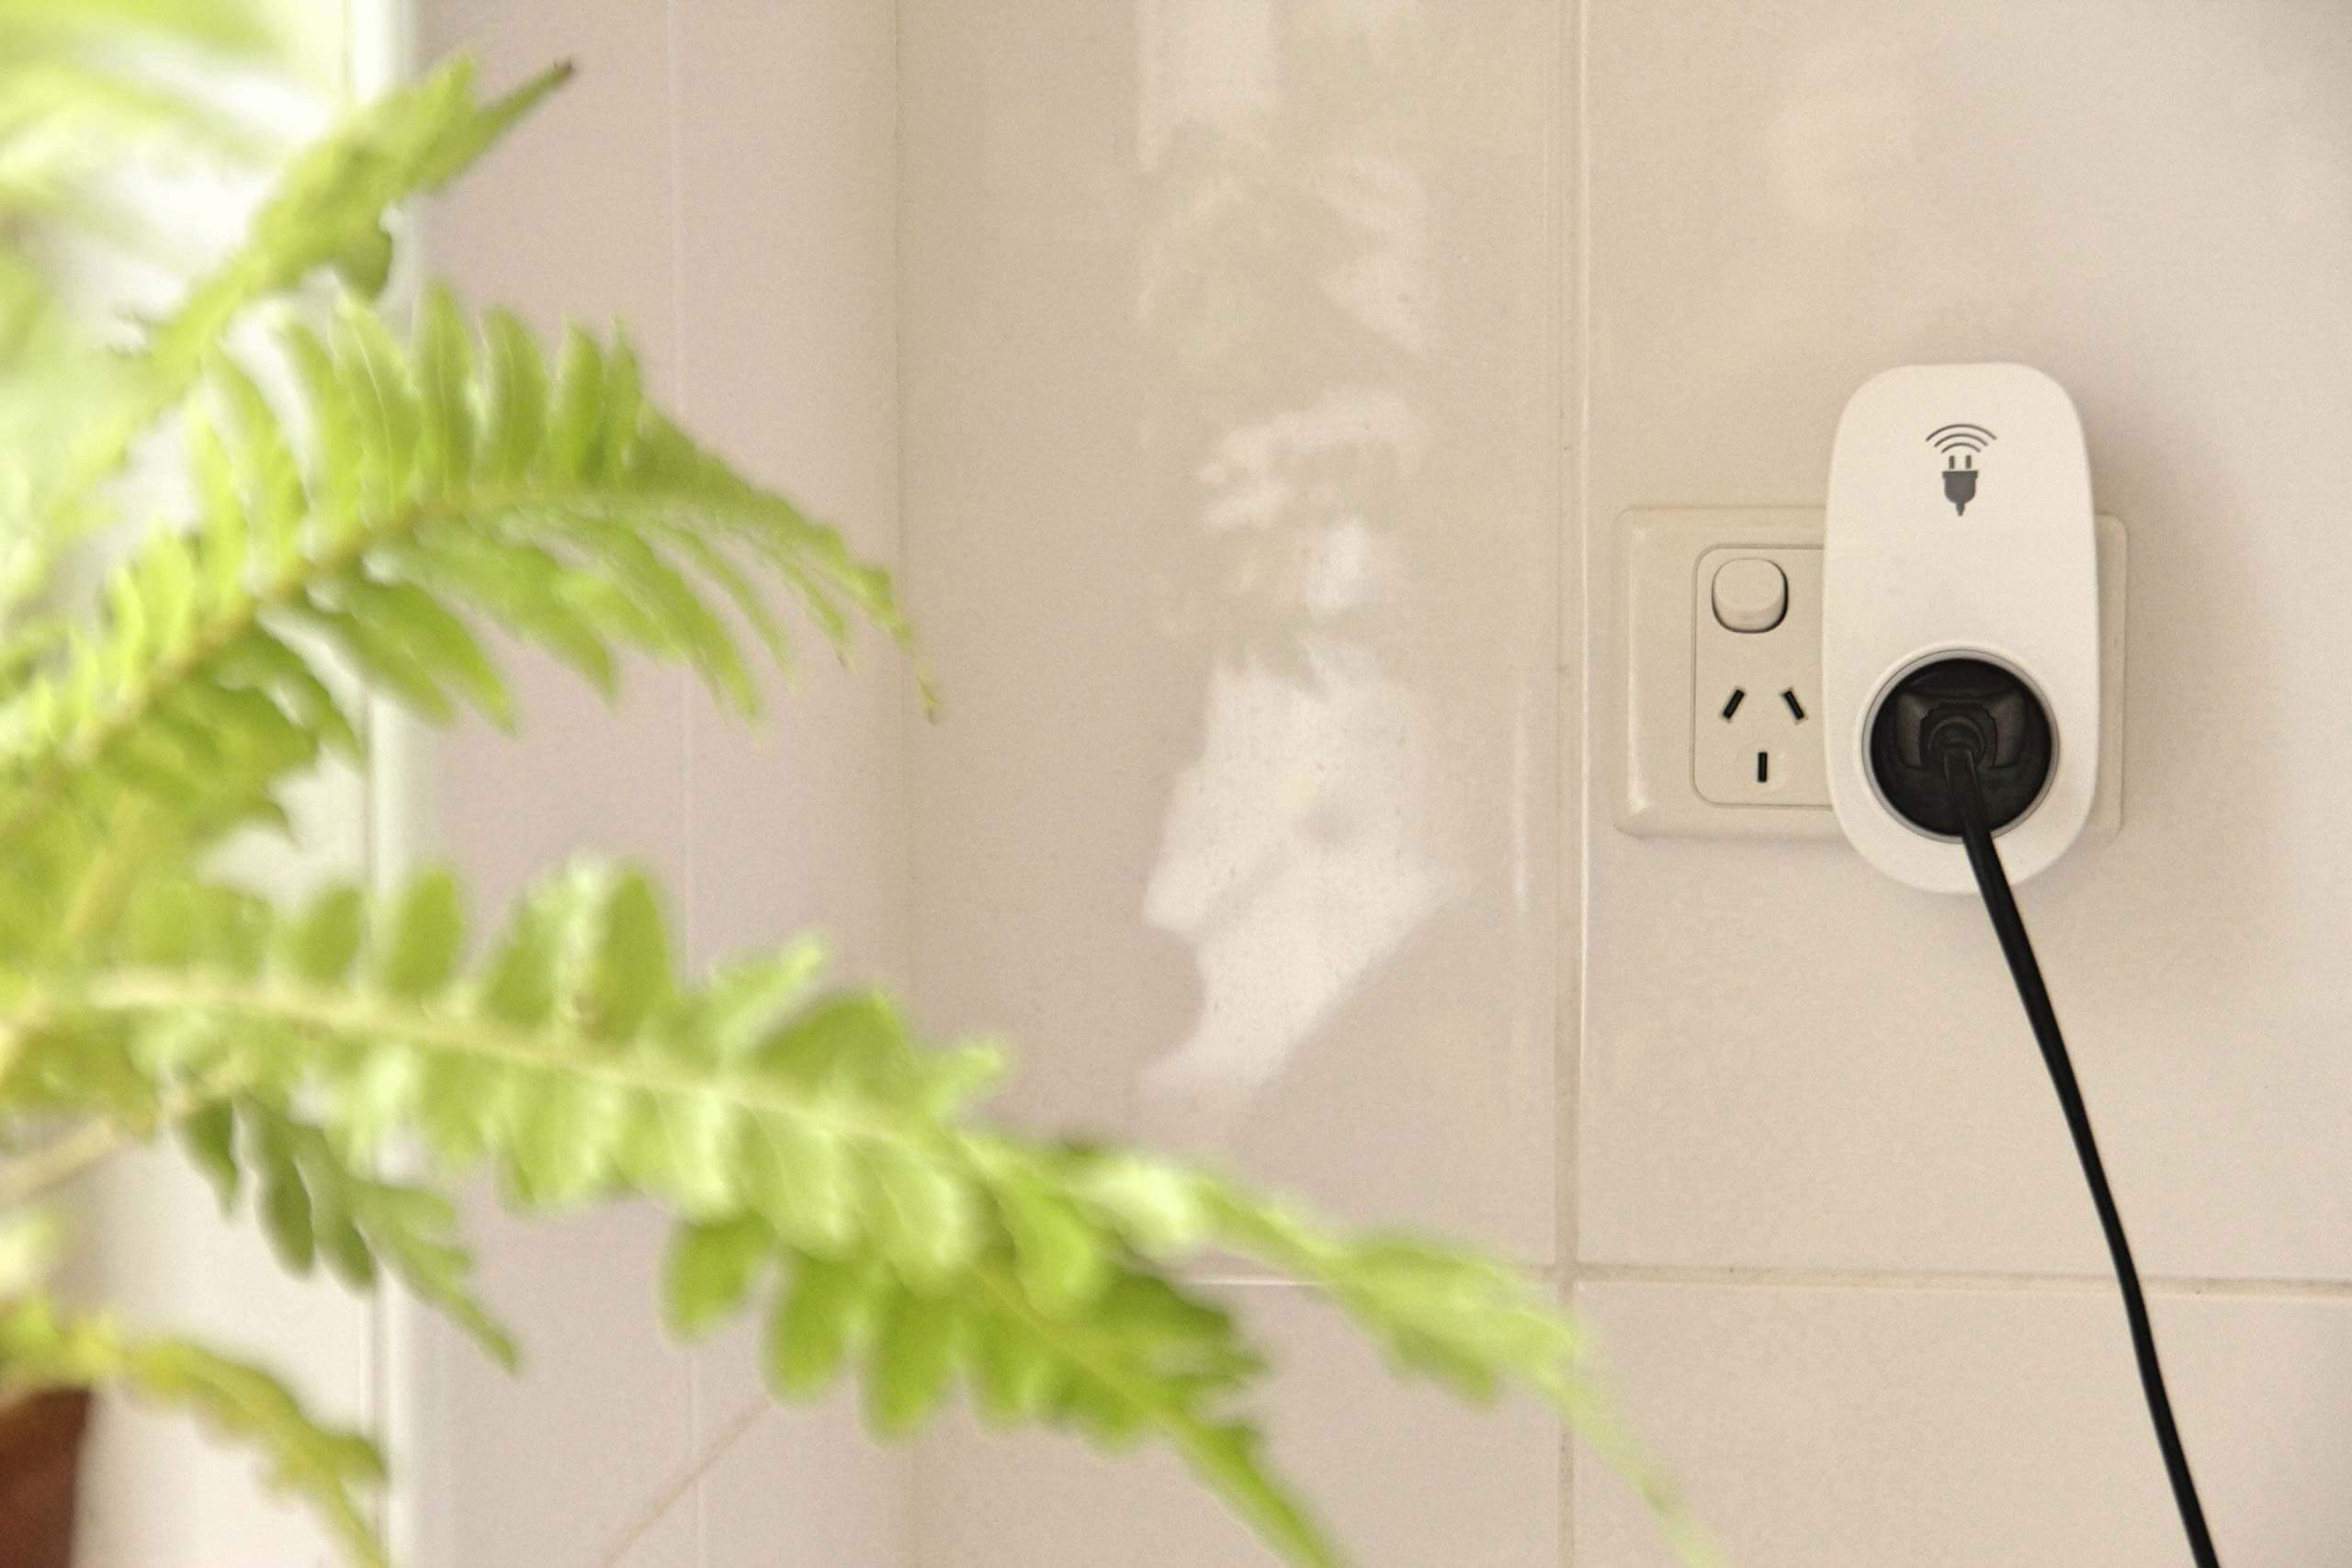 10 awesome things you can do with a Smart Plug